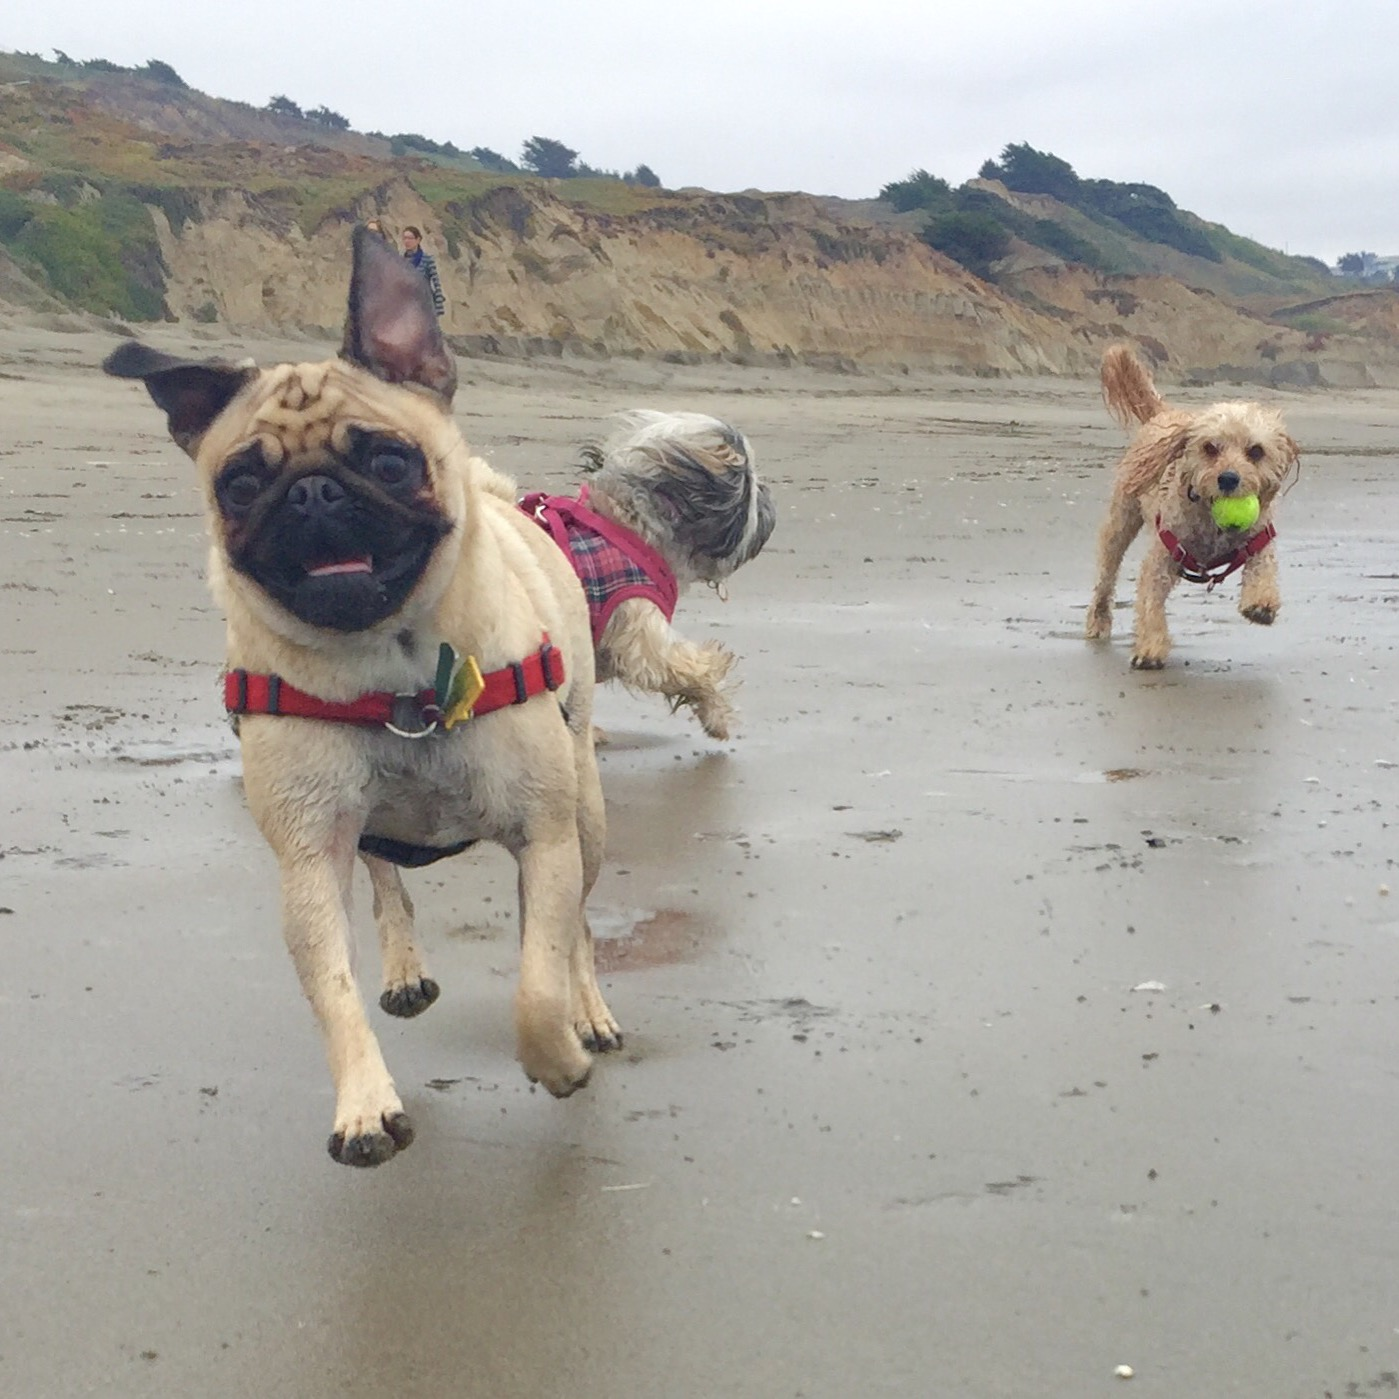 A semi-private walk or small group excursion is a chance for your dog to socialize and interact with other dog friends.